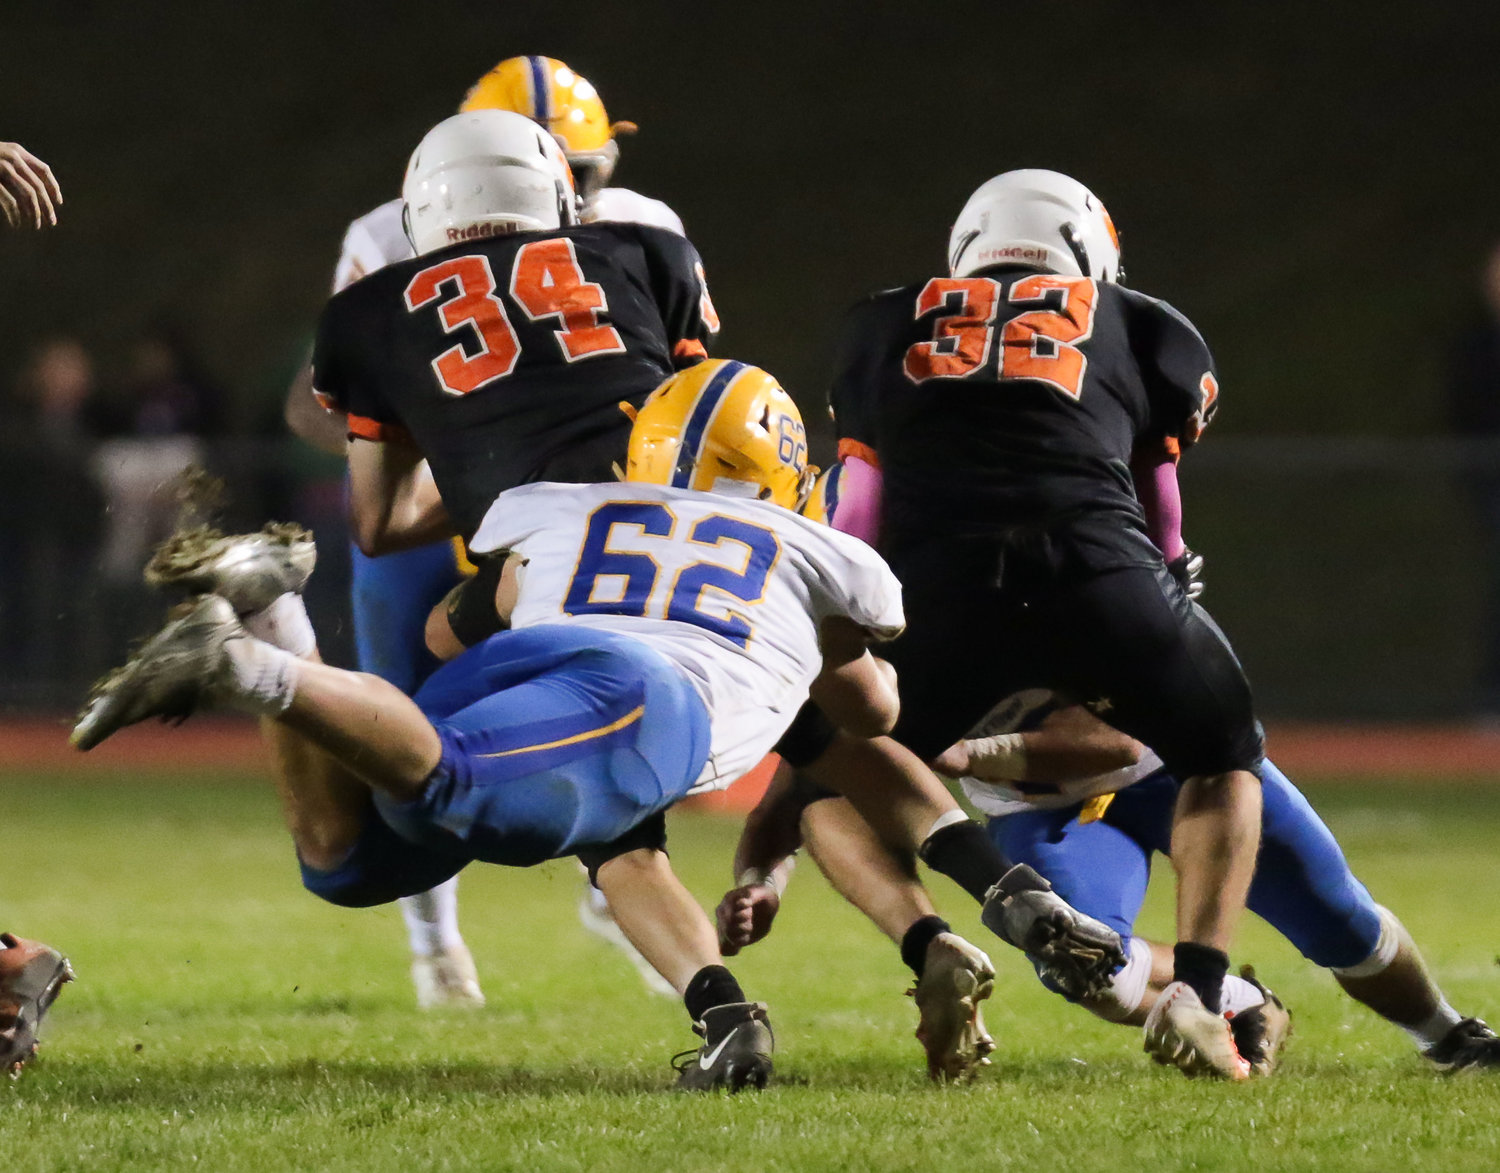 Cole Senior flies through the air for a tackle Oct. 19 vs. East Pennsboro.